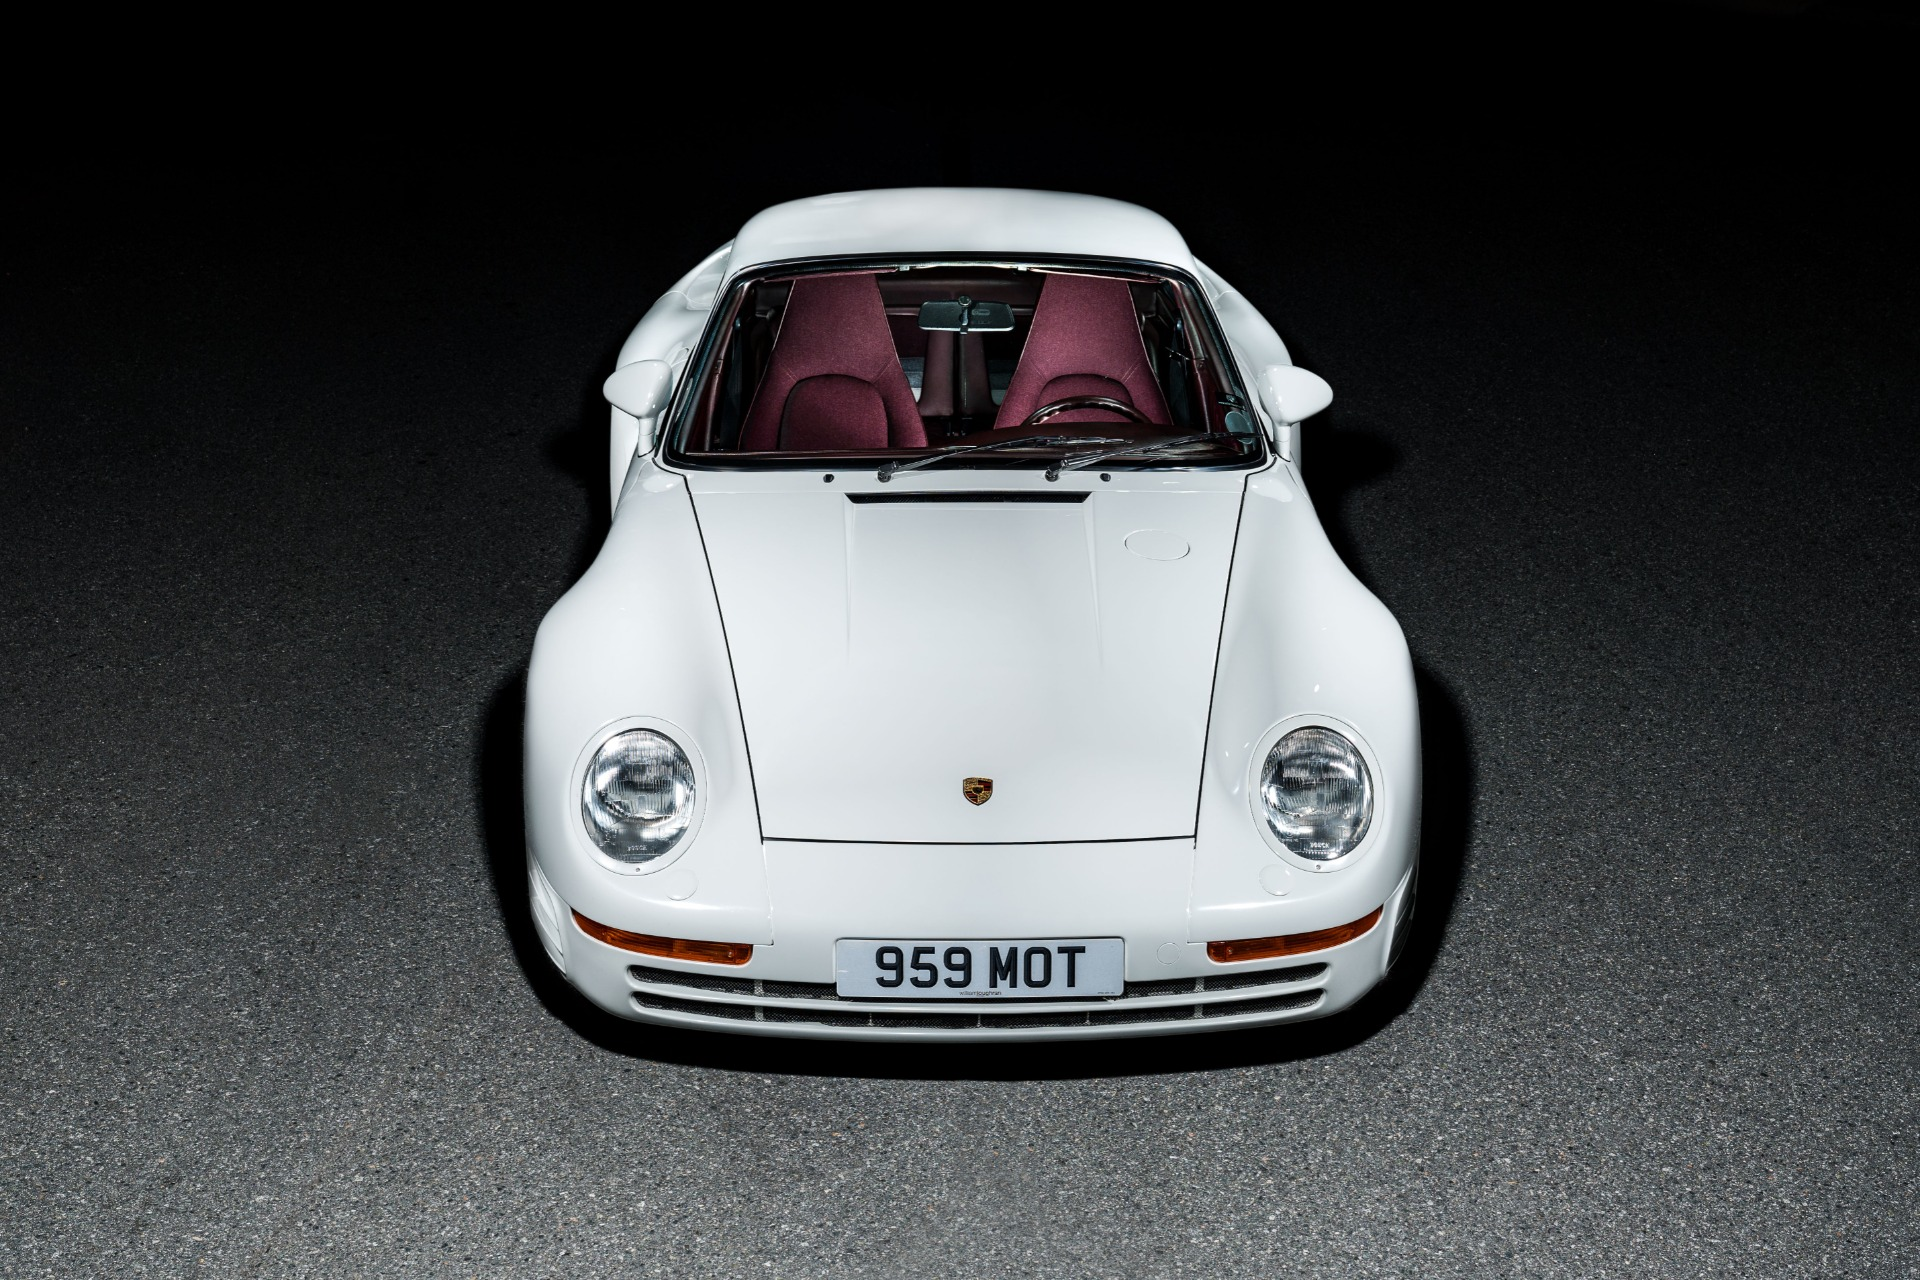 Used 1988 Porsche 959 KOMFORT COUPE / AWD / 6-SPEED MANUAL / ORIGINAL SUPERCAR for sale $1,399,999 at Formula Imports in Charlotte NC 28227 22